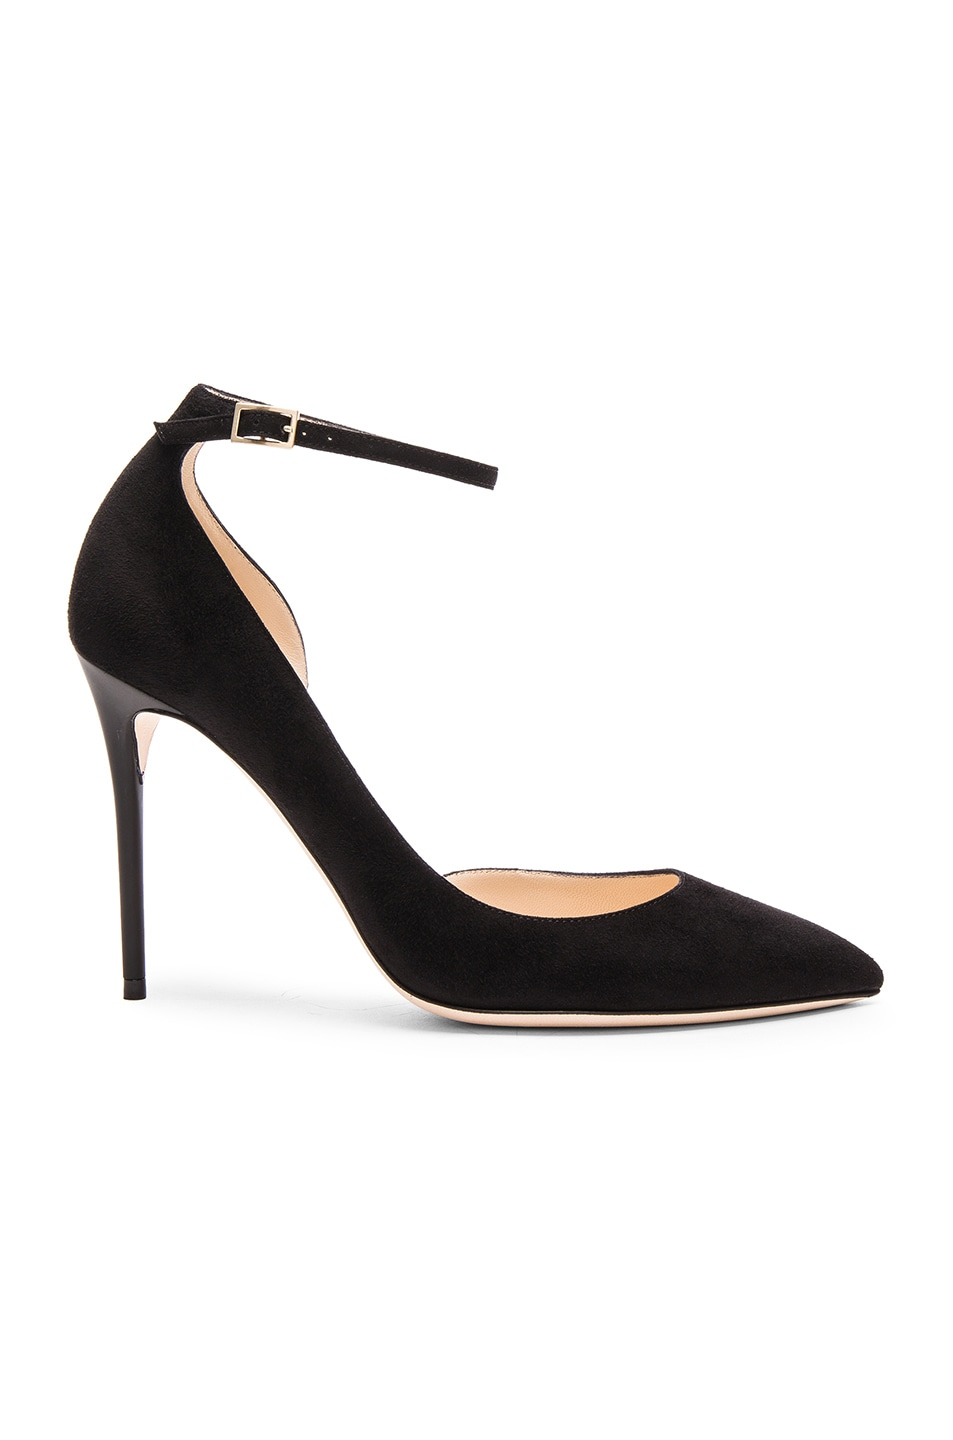 Image 1 of Jimmy Choo Suede Lucy Heels in Black